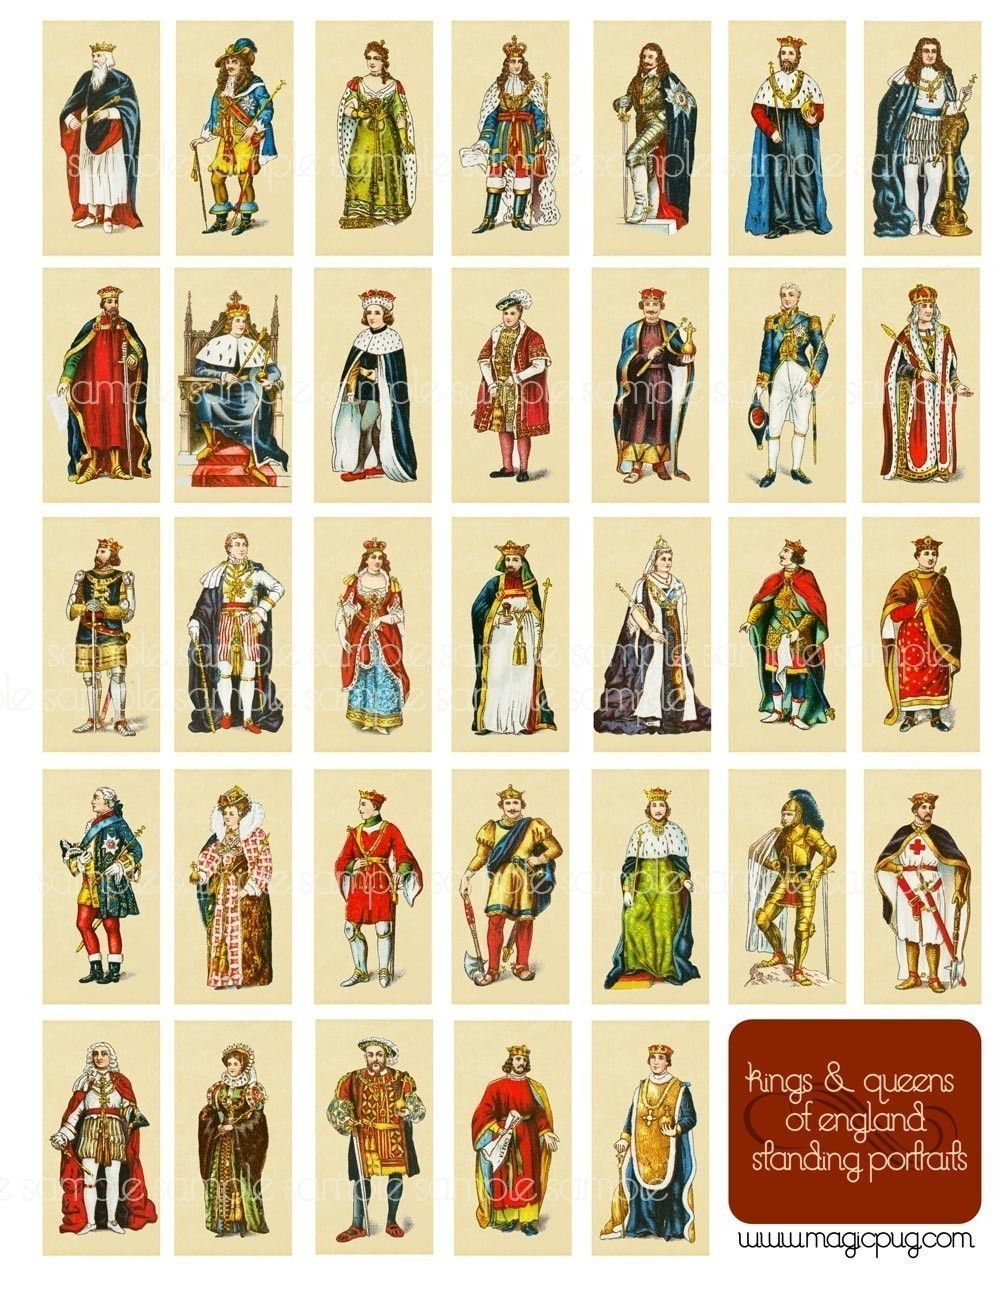 Kings and Queens of England standing portraits digital collage sheet Henry VIII Elizabeth I costume fashion art history. $3.00, via Etsy.